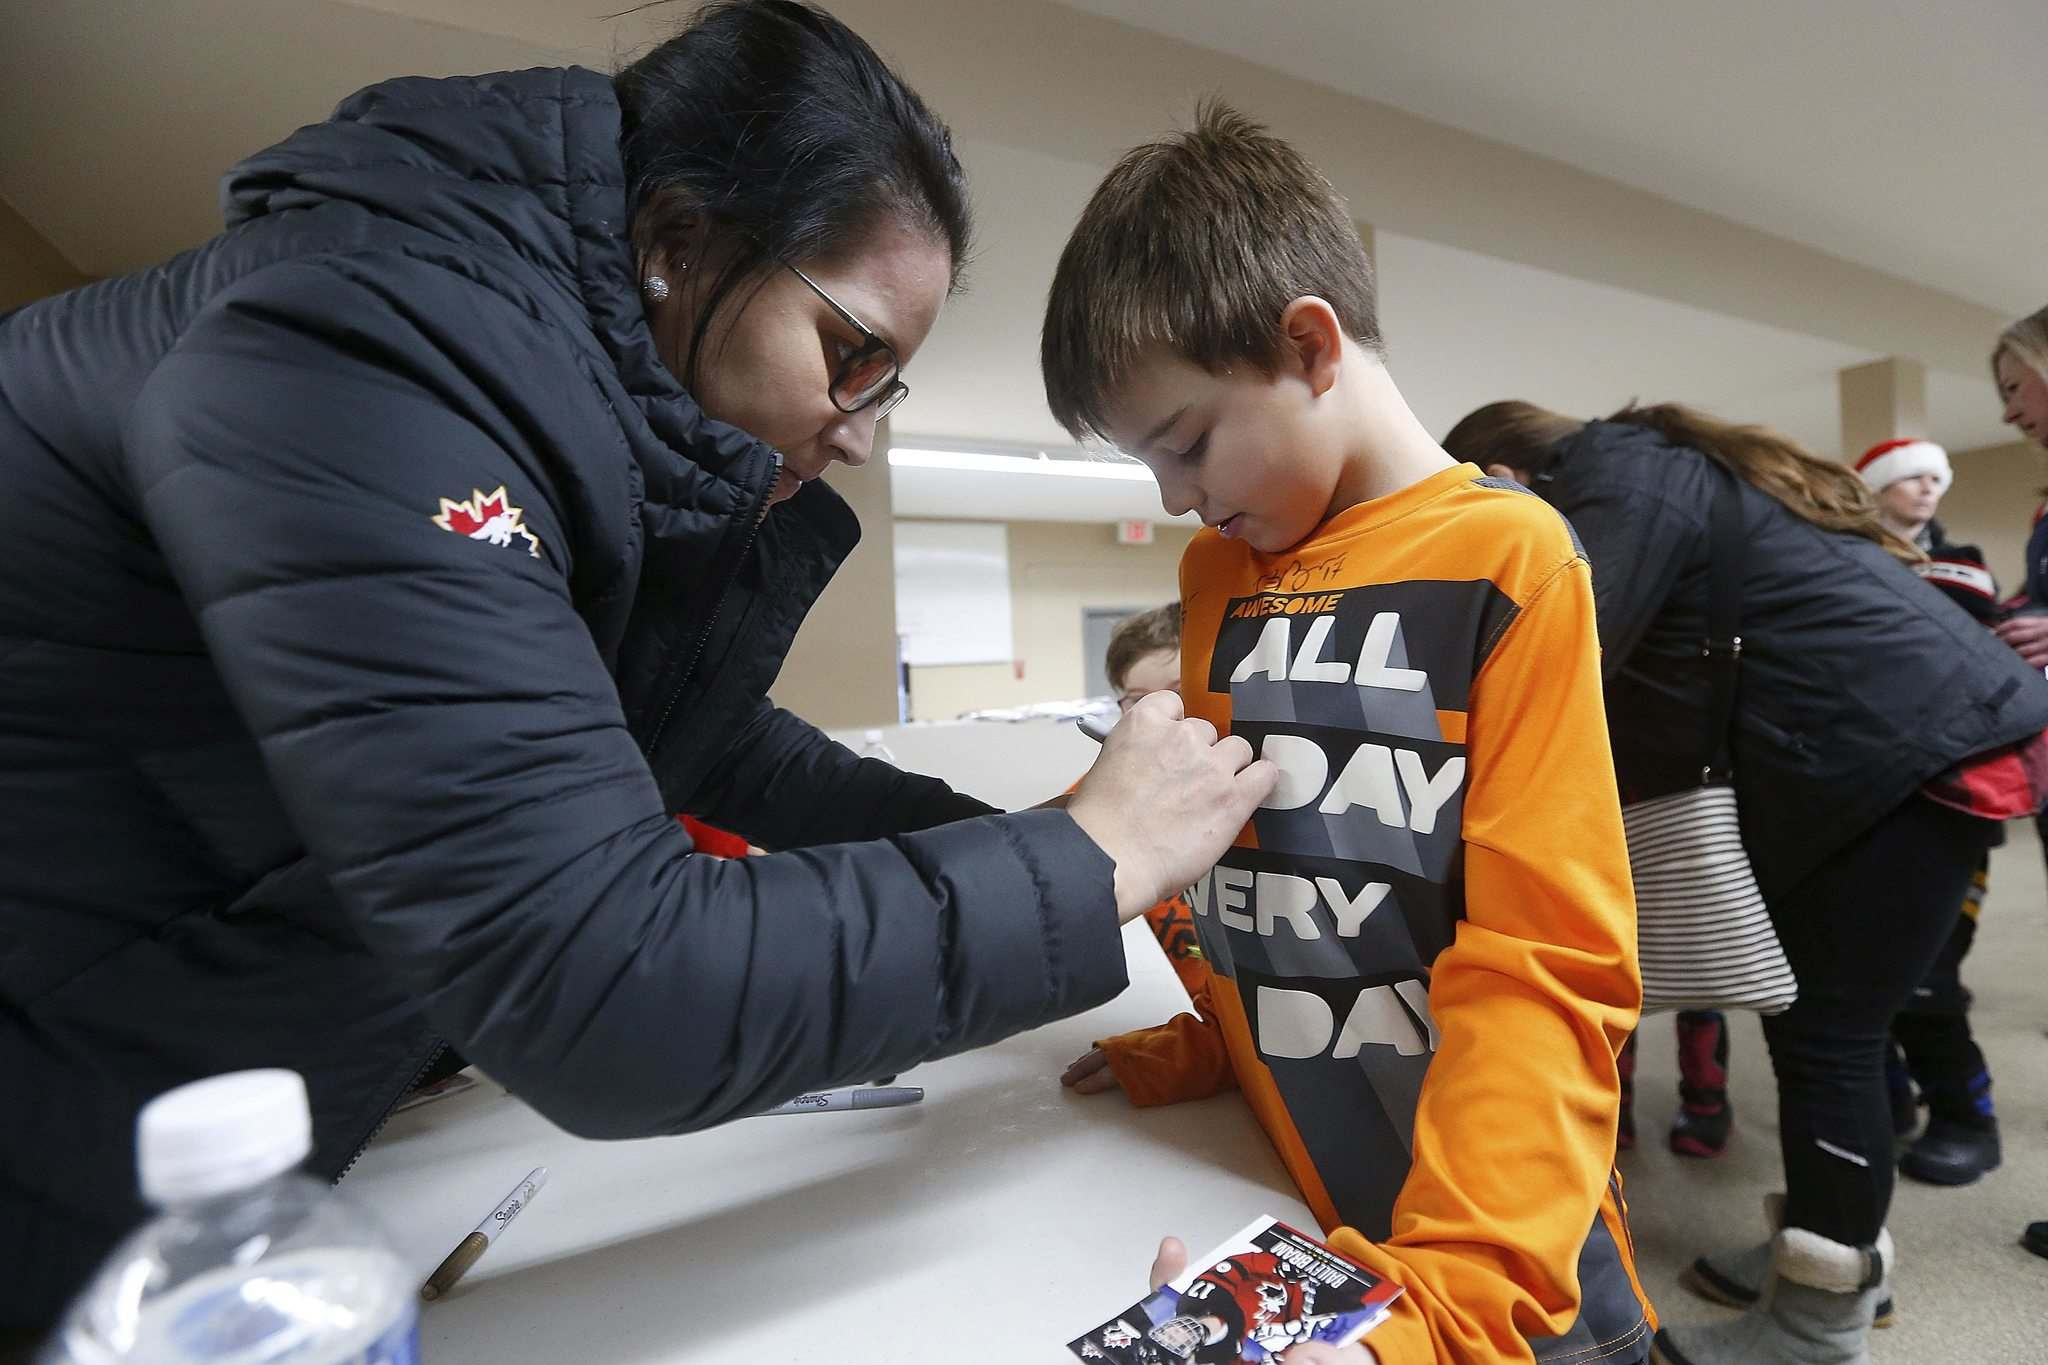 JOHN WOODS / WINNIPEG FREE PRESS</p><p>Team Canada hockey player Brigette Lacquette signs an autograph for Luca Normandeau in St Anne.</p>